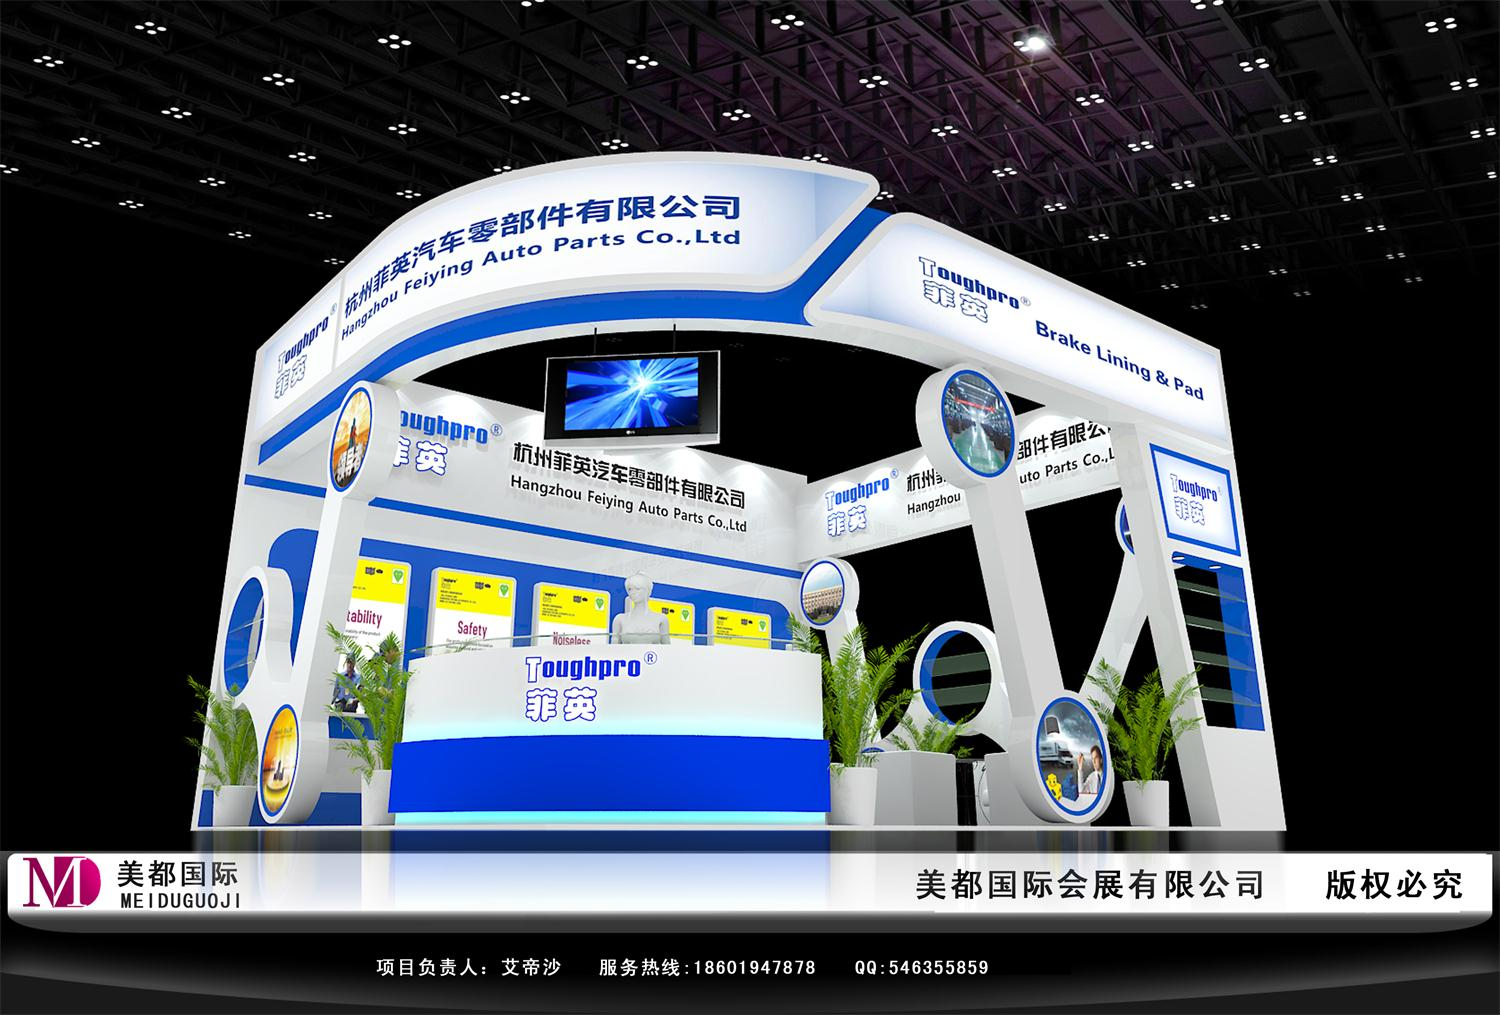 Automechanika exhibition in shanghai